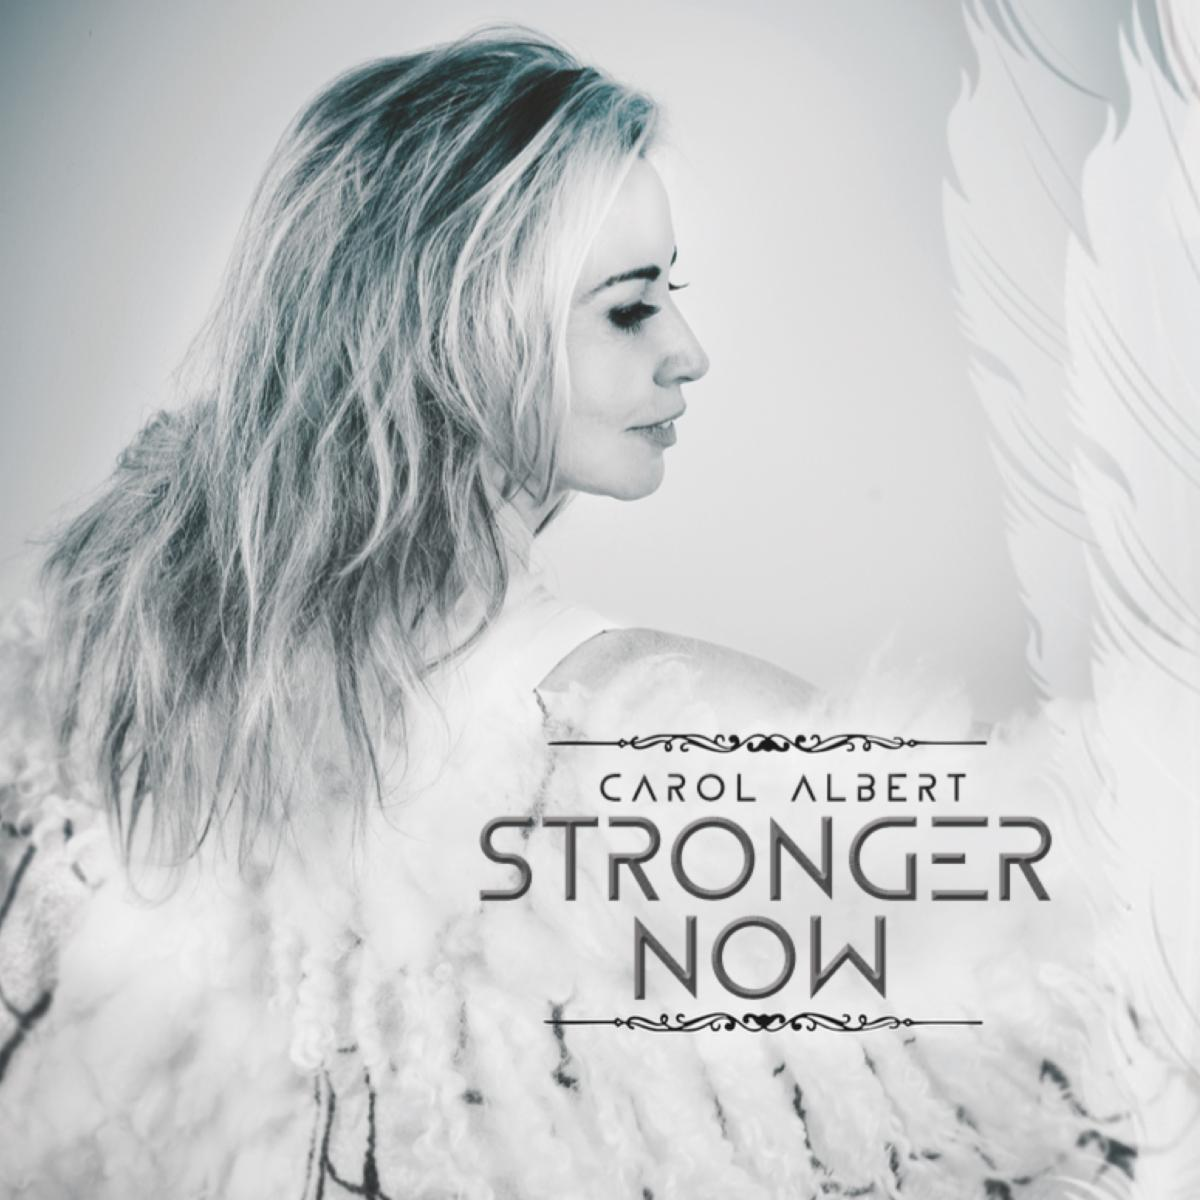 Watch Video Clip for 'Stronger Now' by Carol Albert